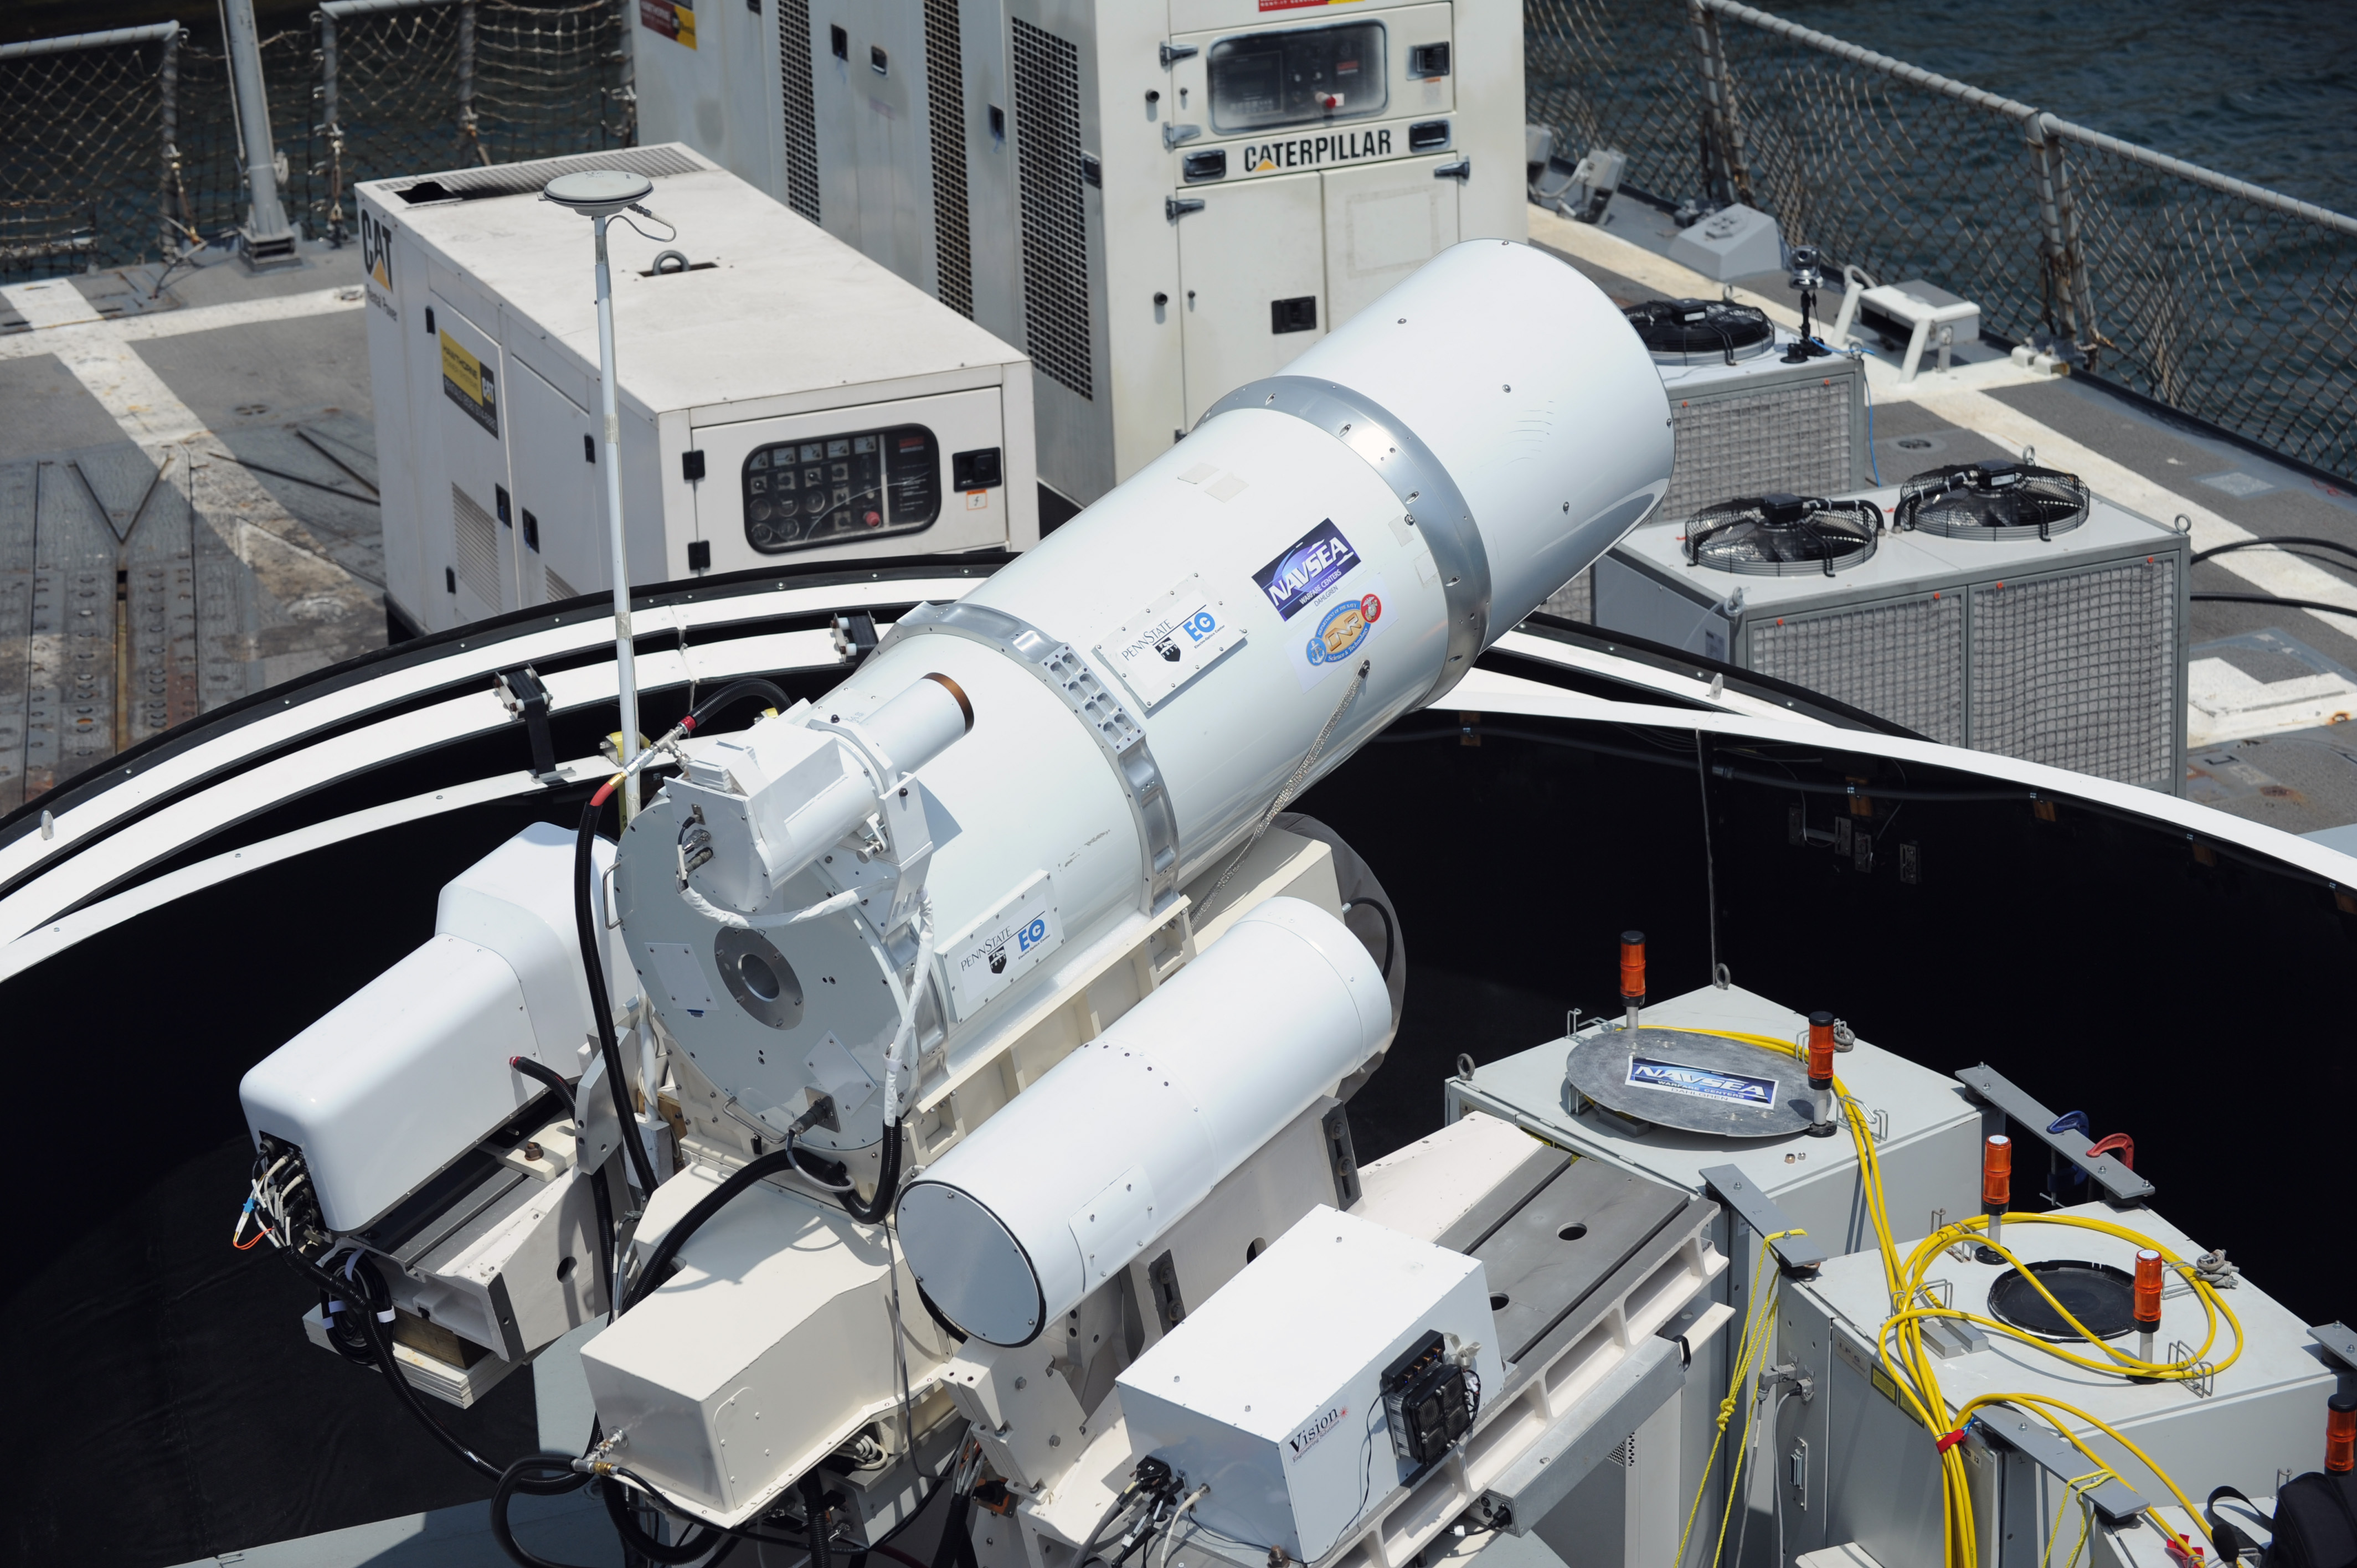 Navy LaWS laser weapon system